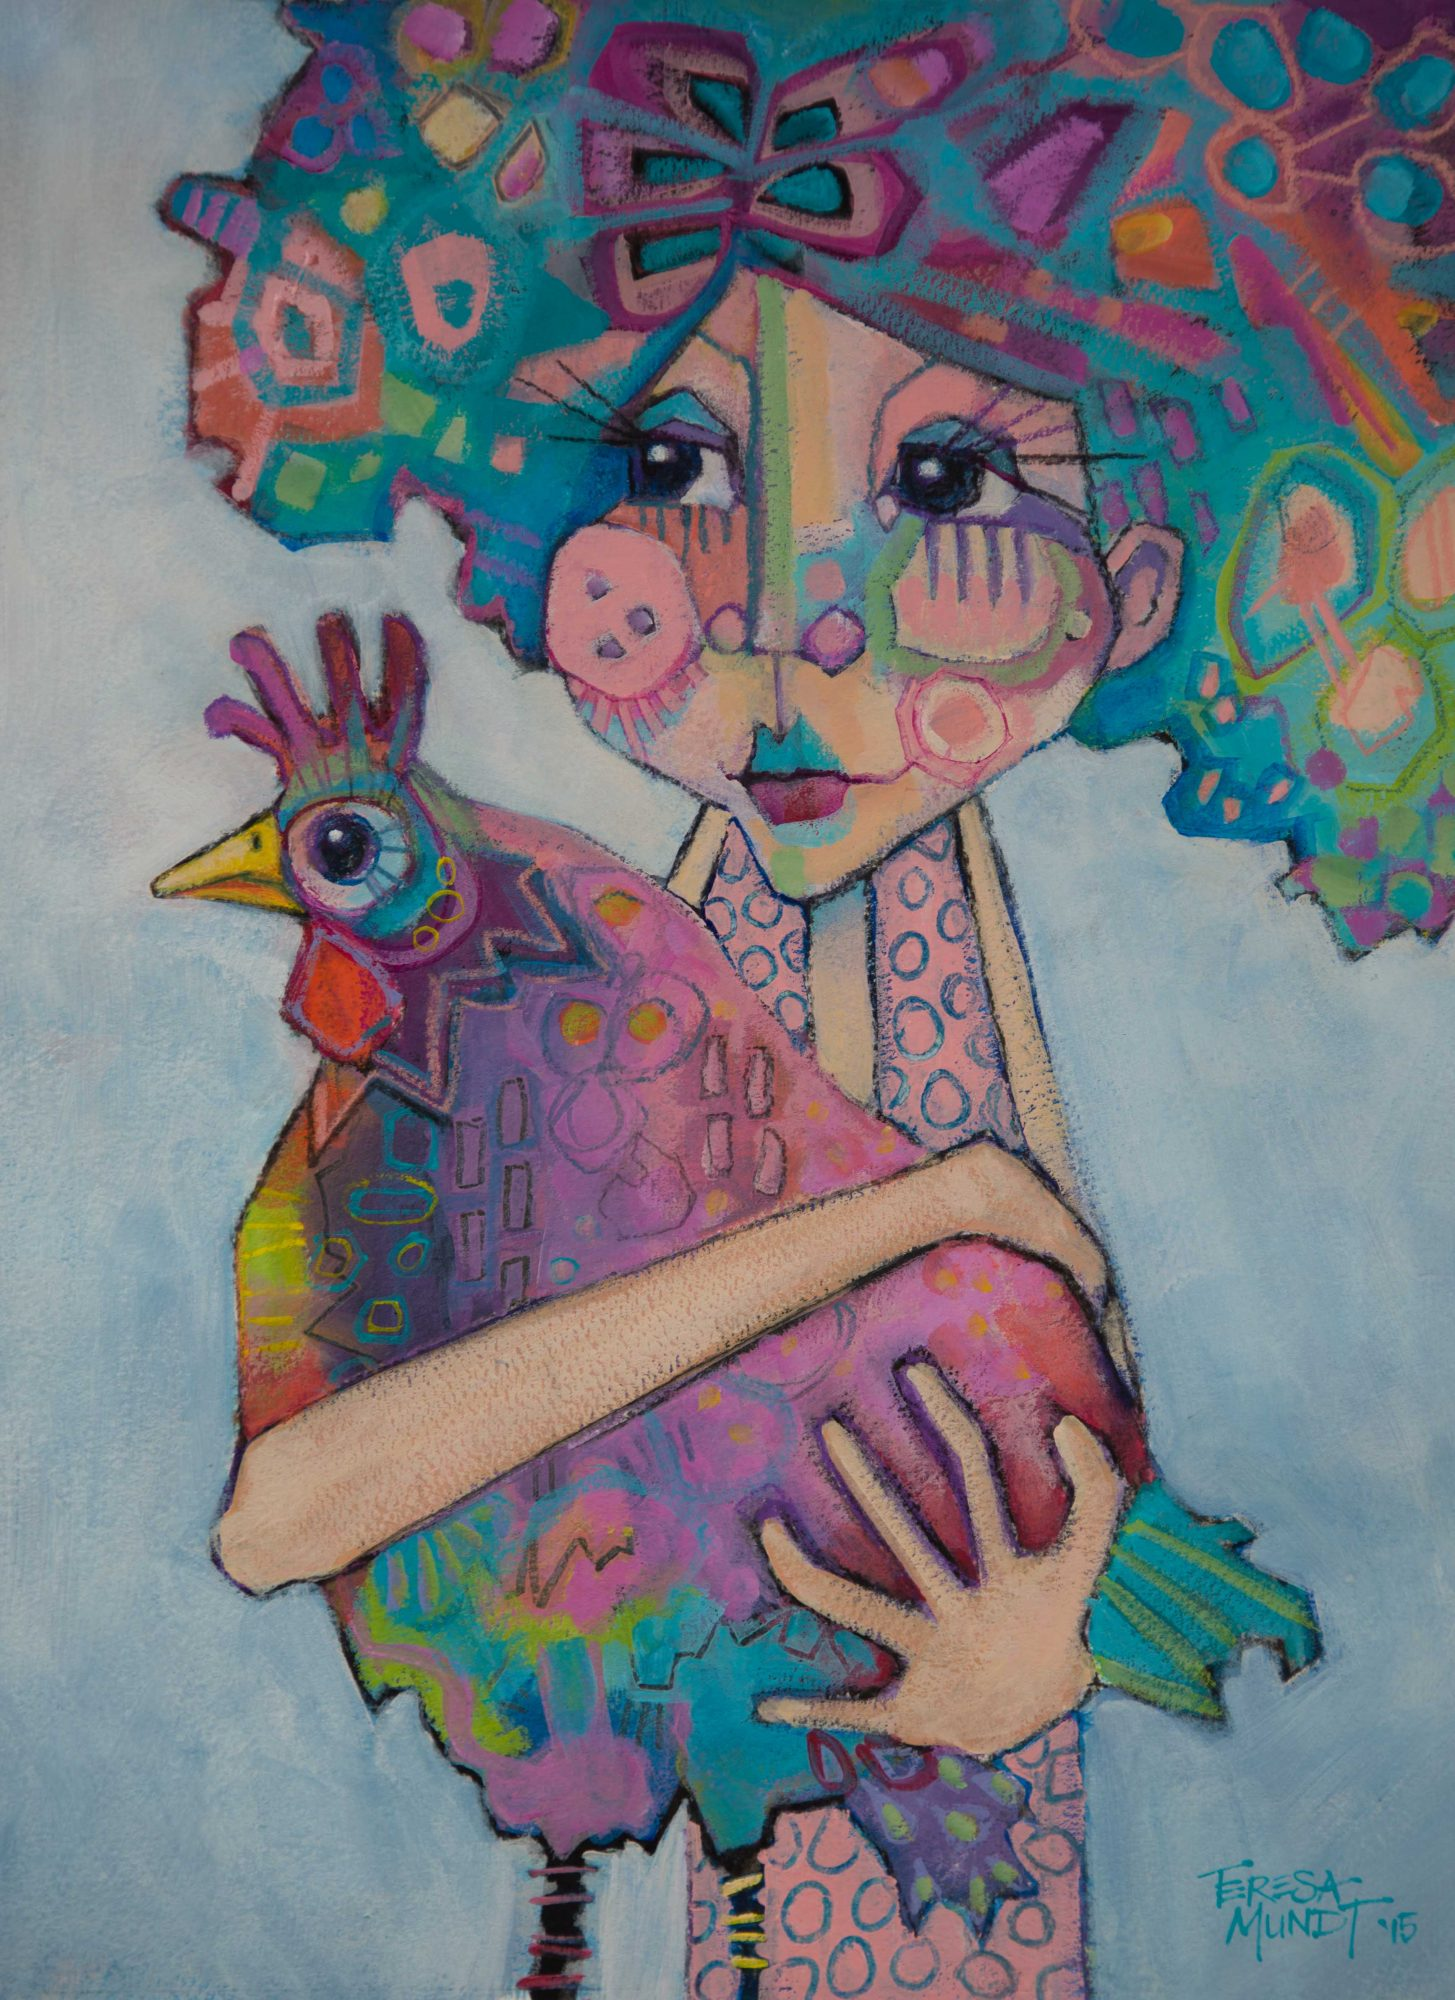 Miss Penny's Hen by Teresa Mundt_colourful_colorful_chook_chicken_hen_girl_contemporary_art_painting